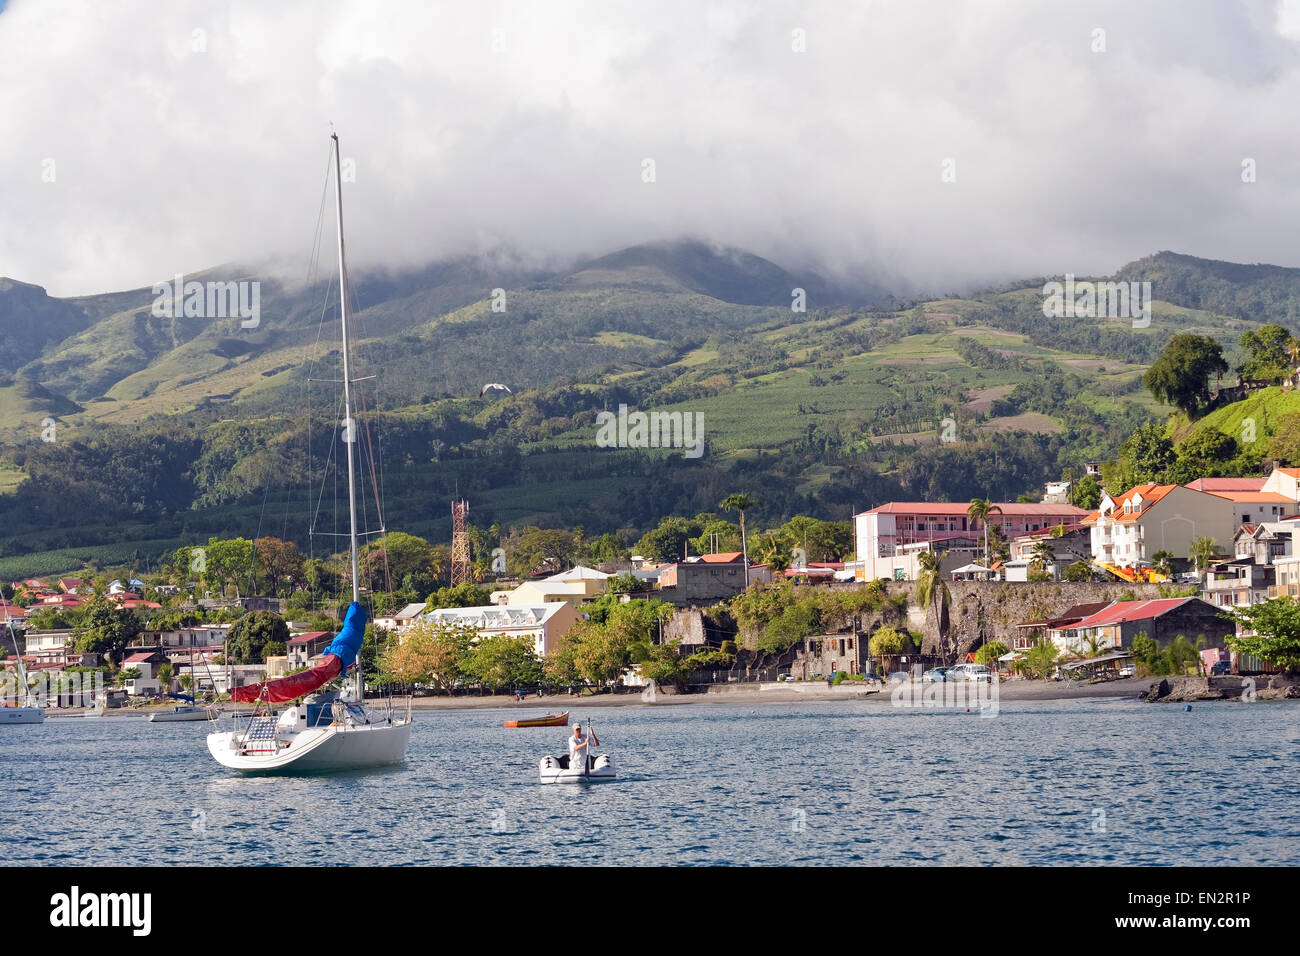 St. Pierre, Martinique - Stock Image